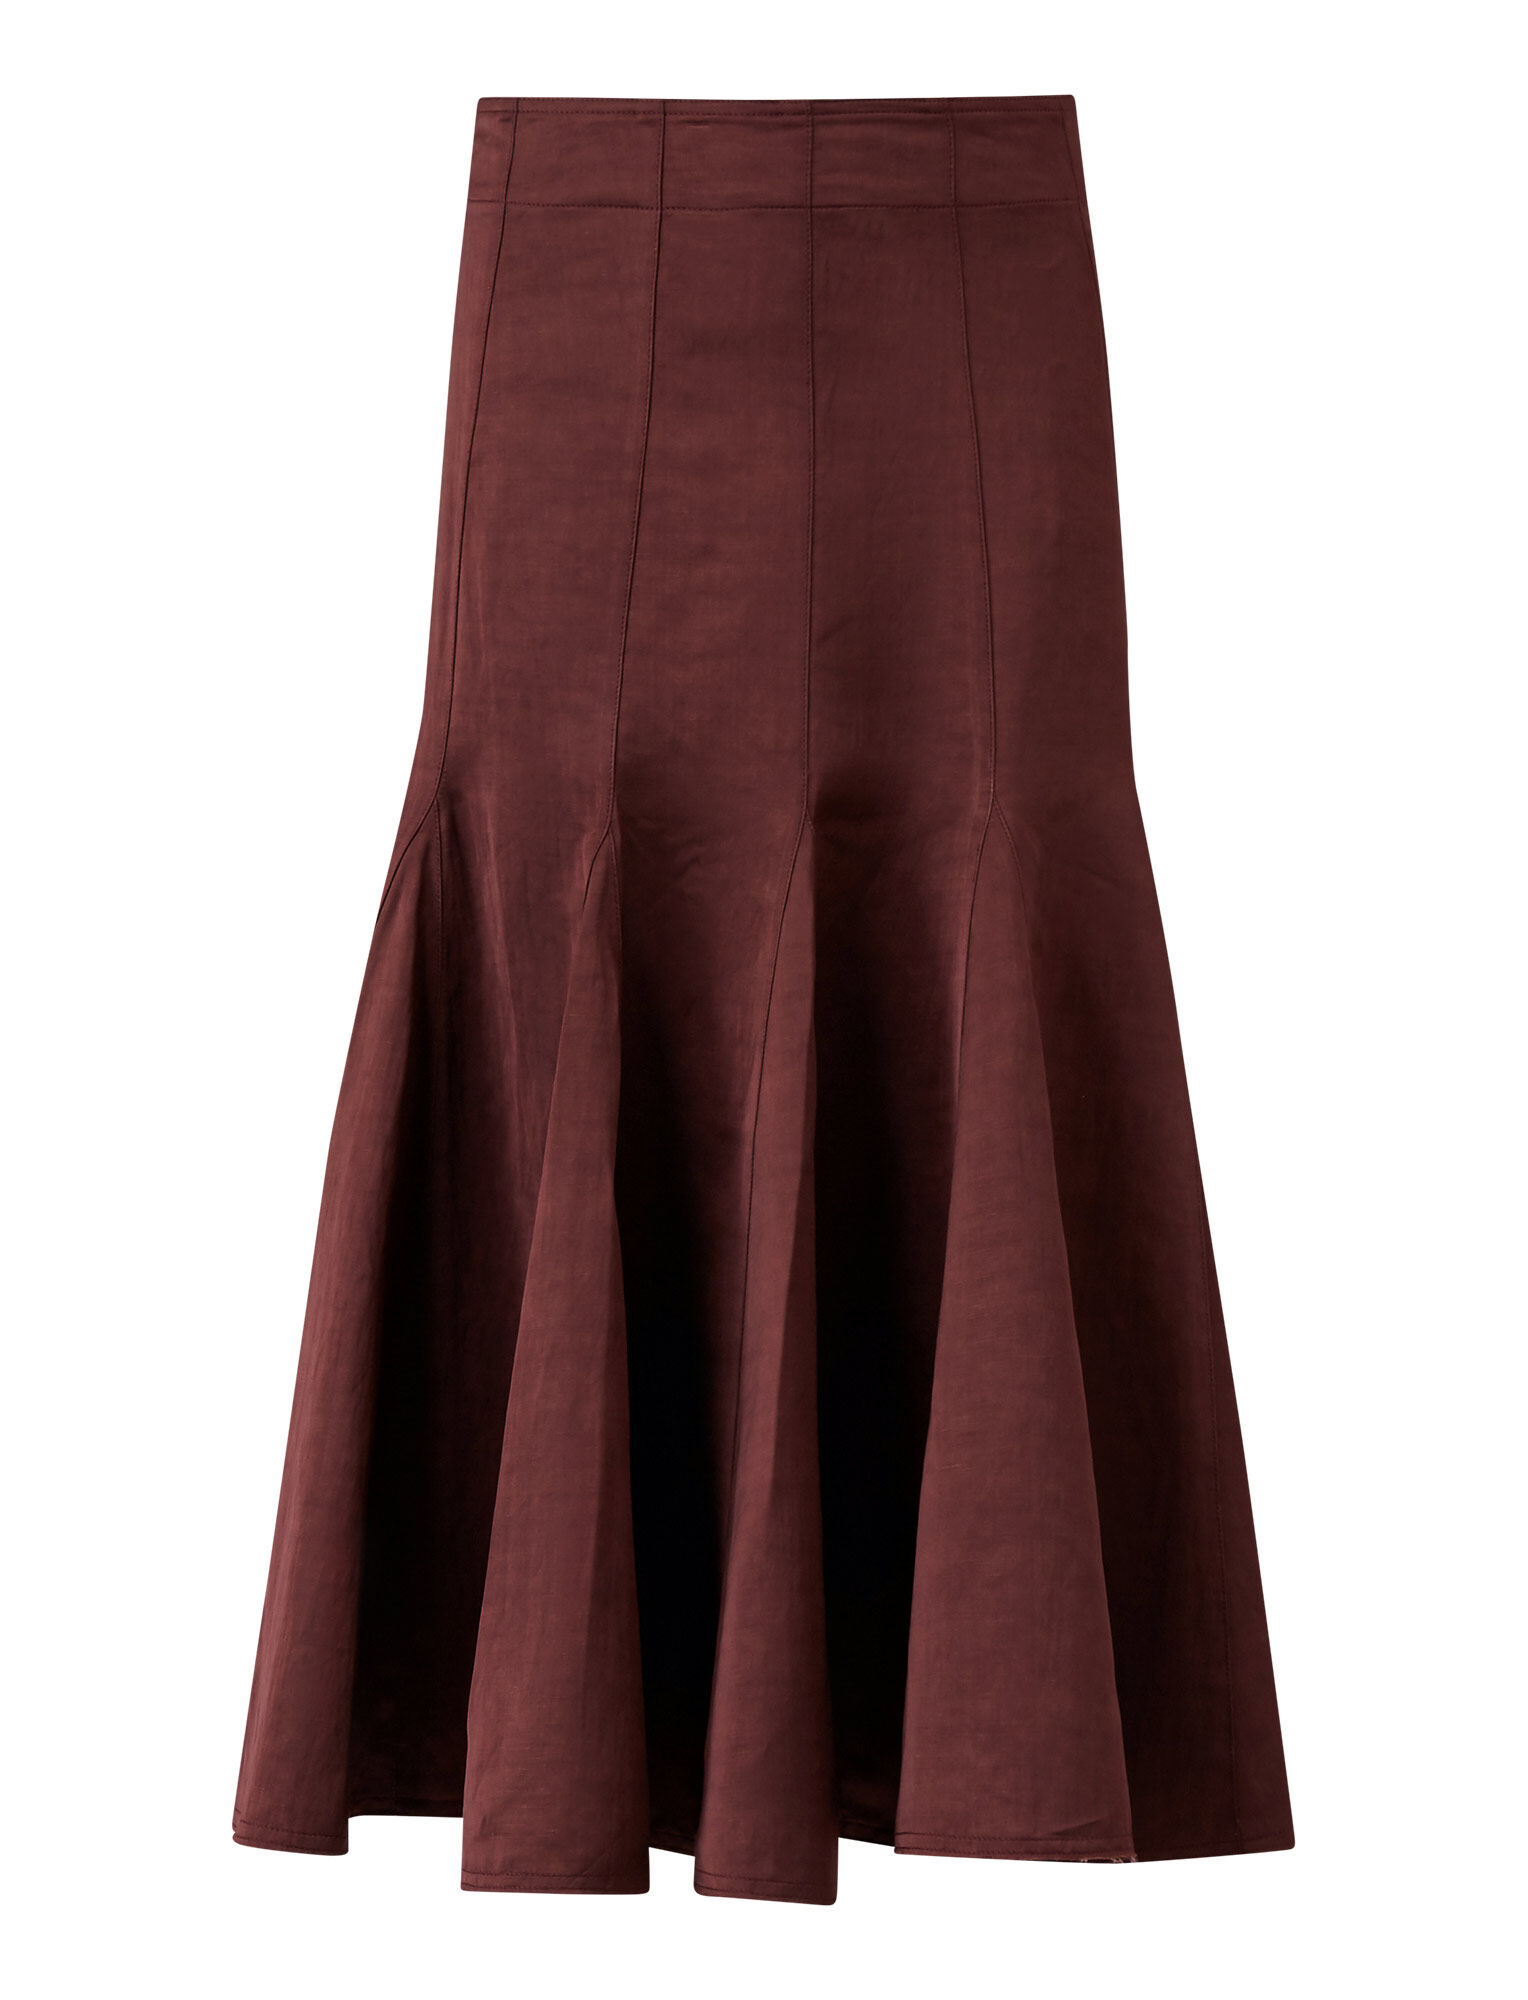 Joseph, Sula Chintz Skirt, in MERLOT